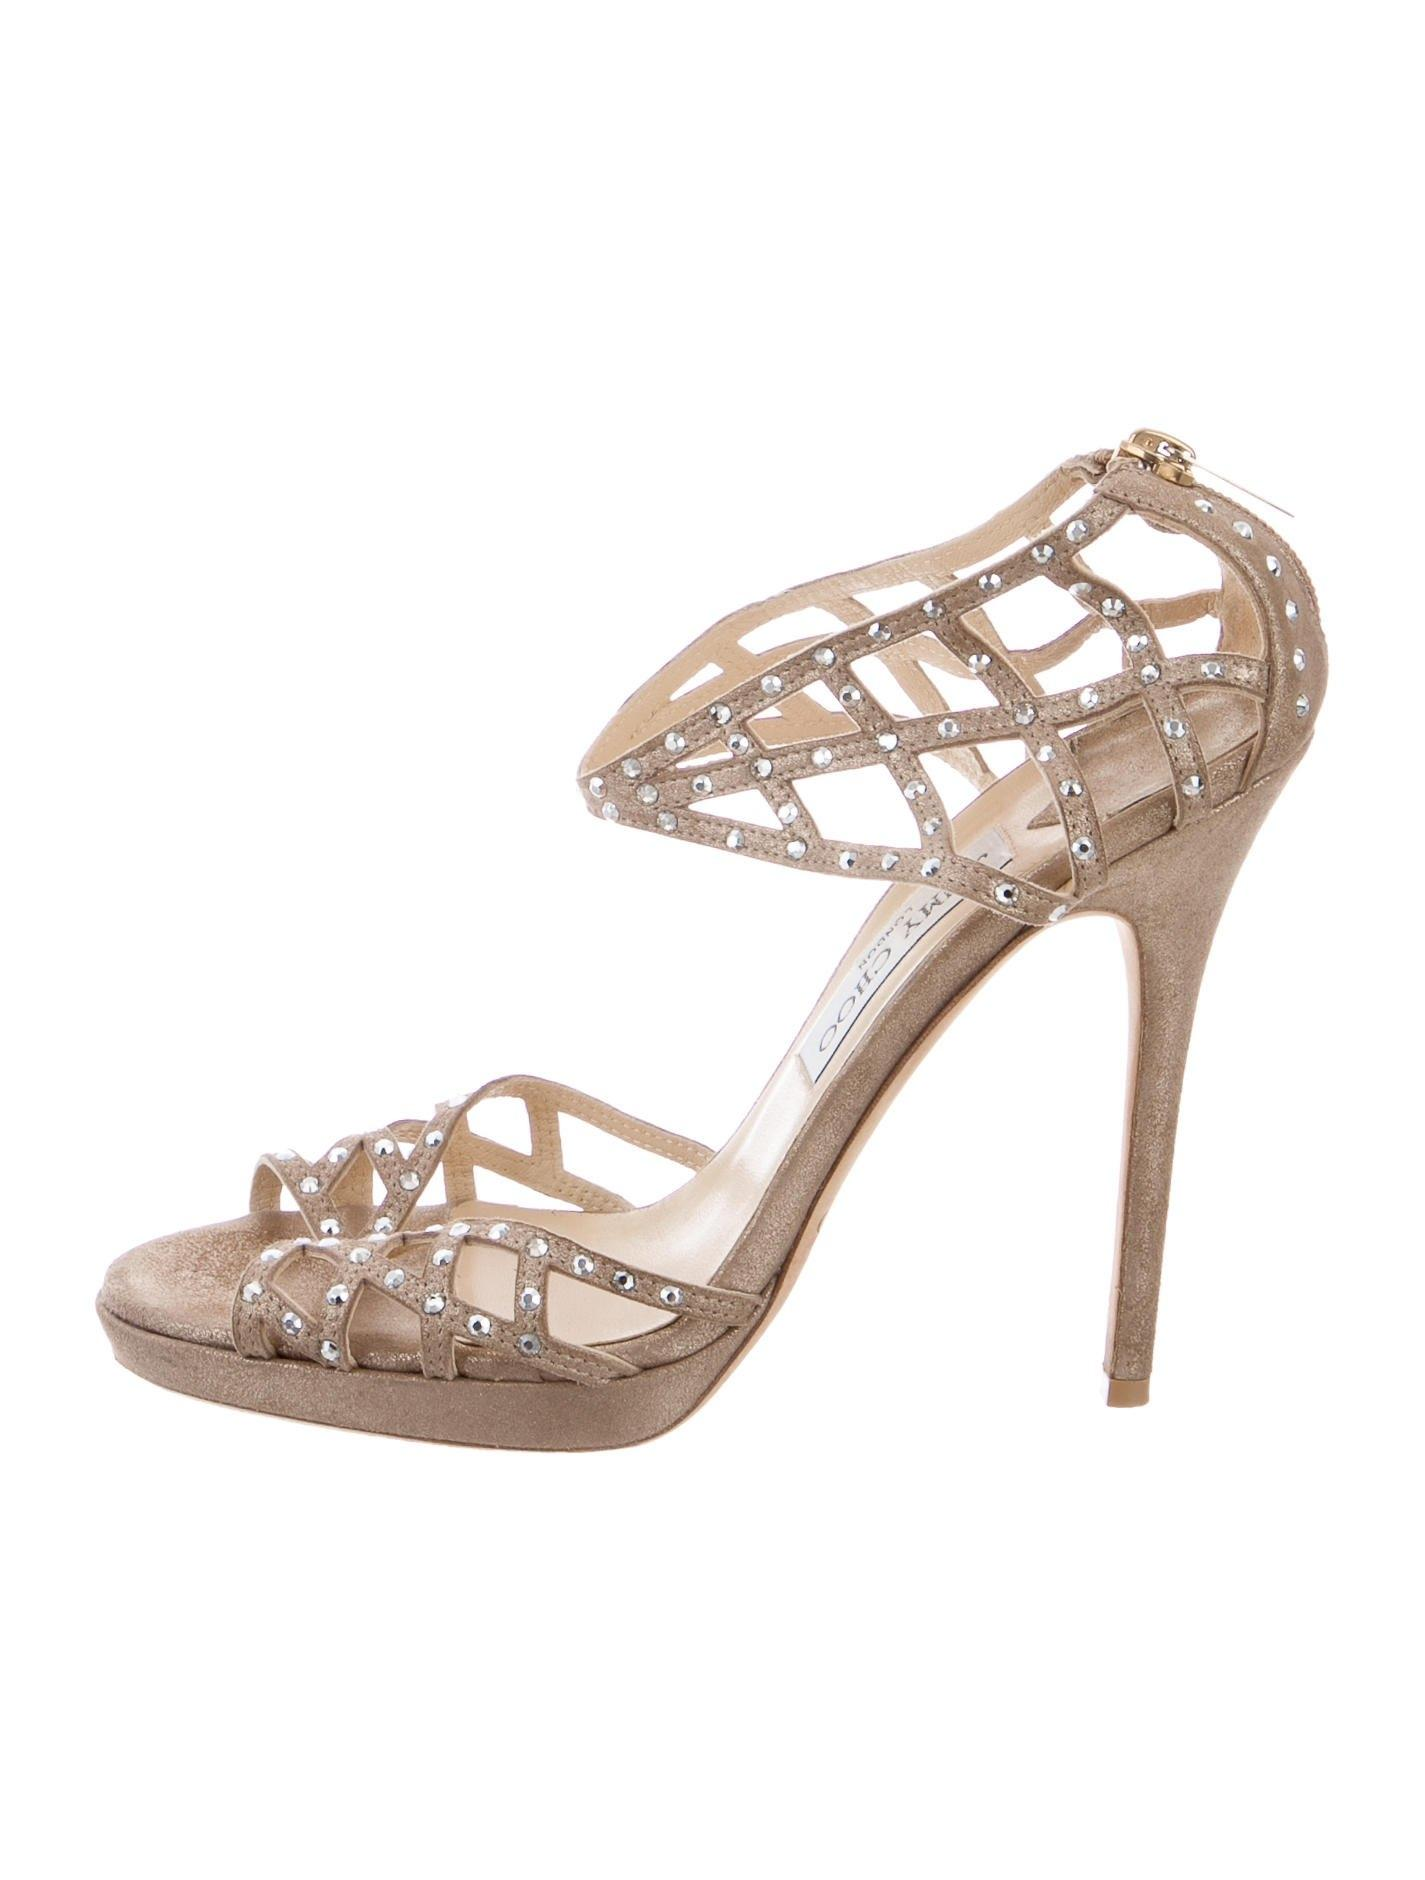 outlet collections clearance enjoy Jimmy Choo Embellished Multistrap Sandals YBWa6cGUQi